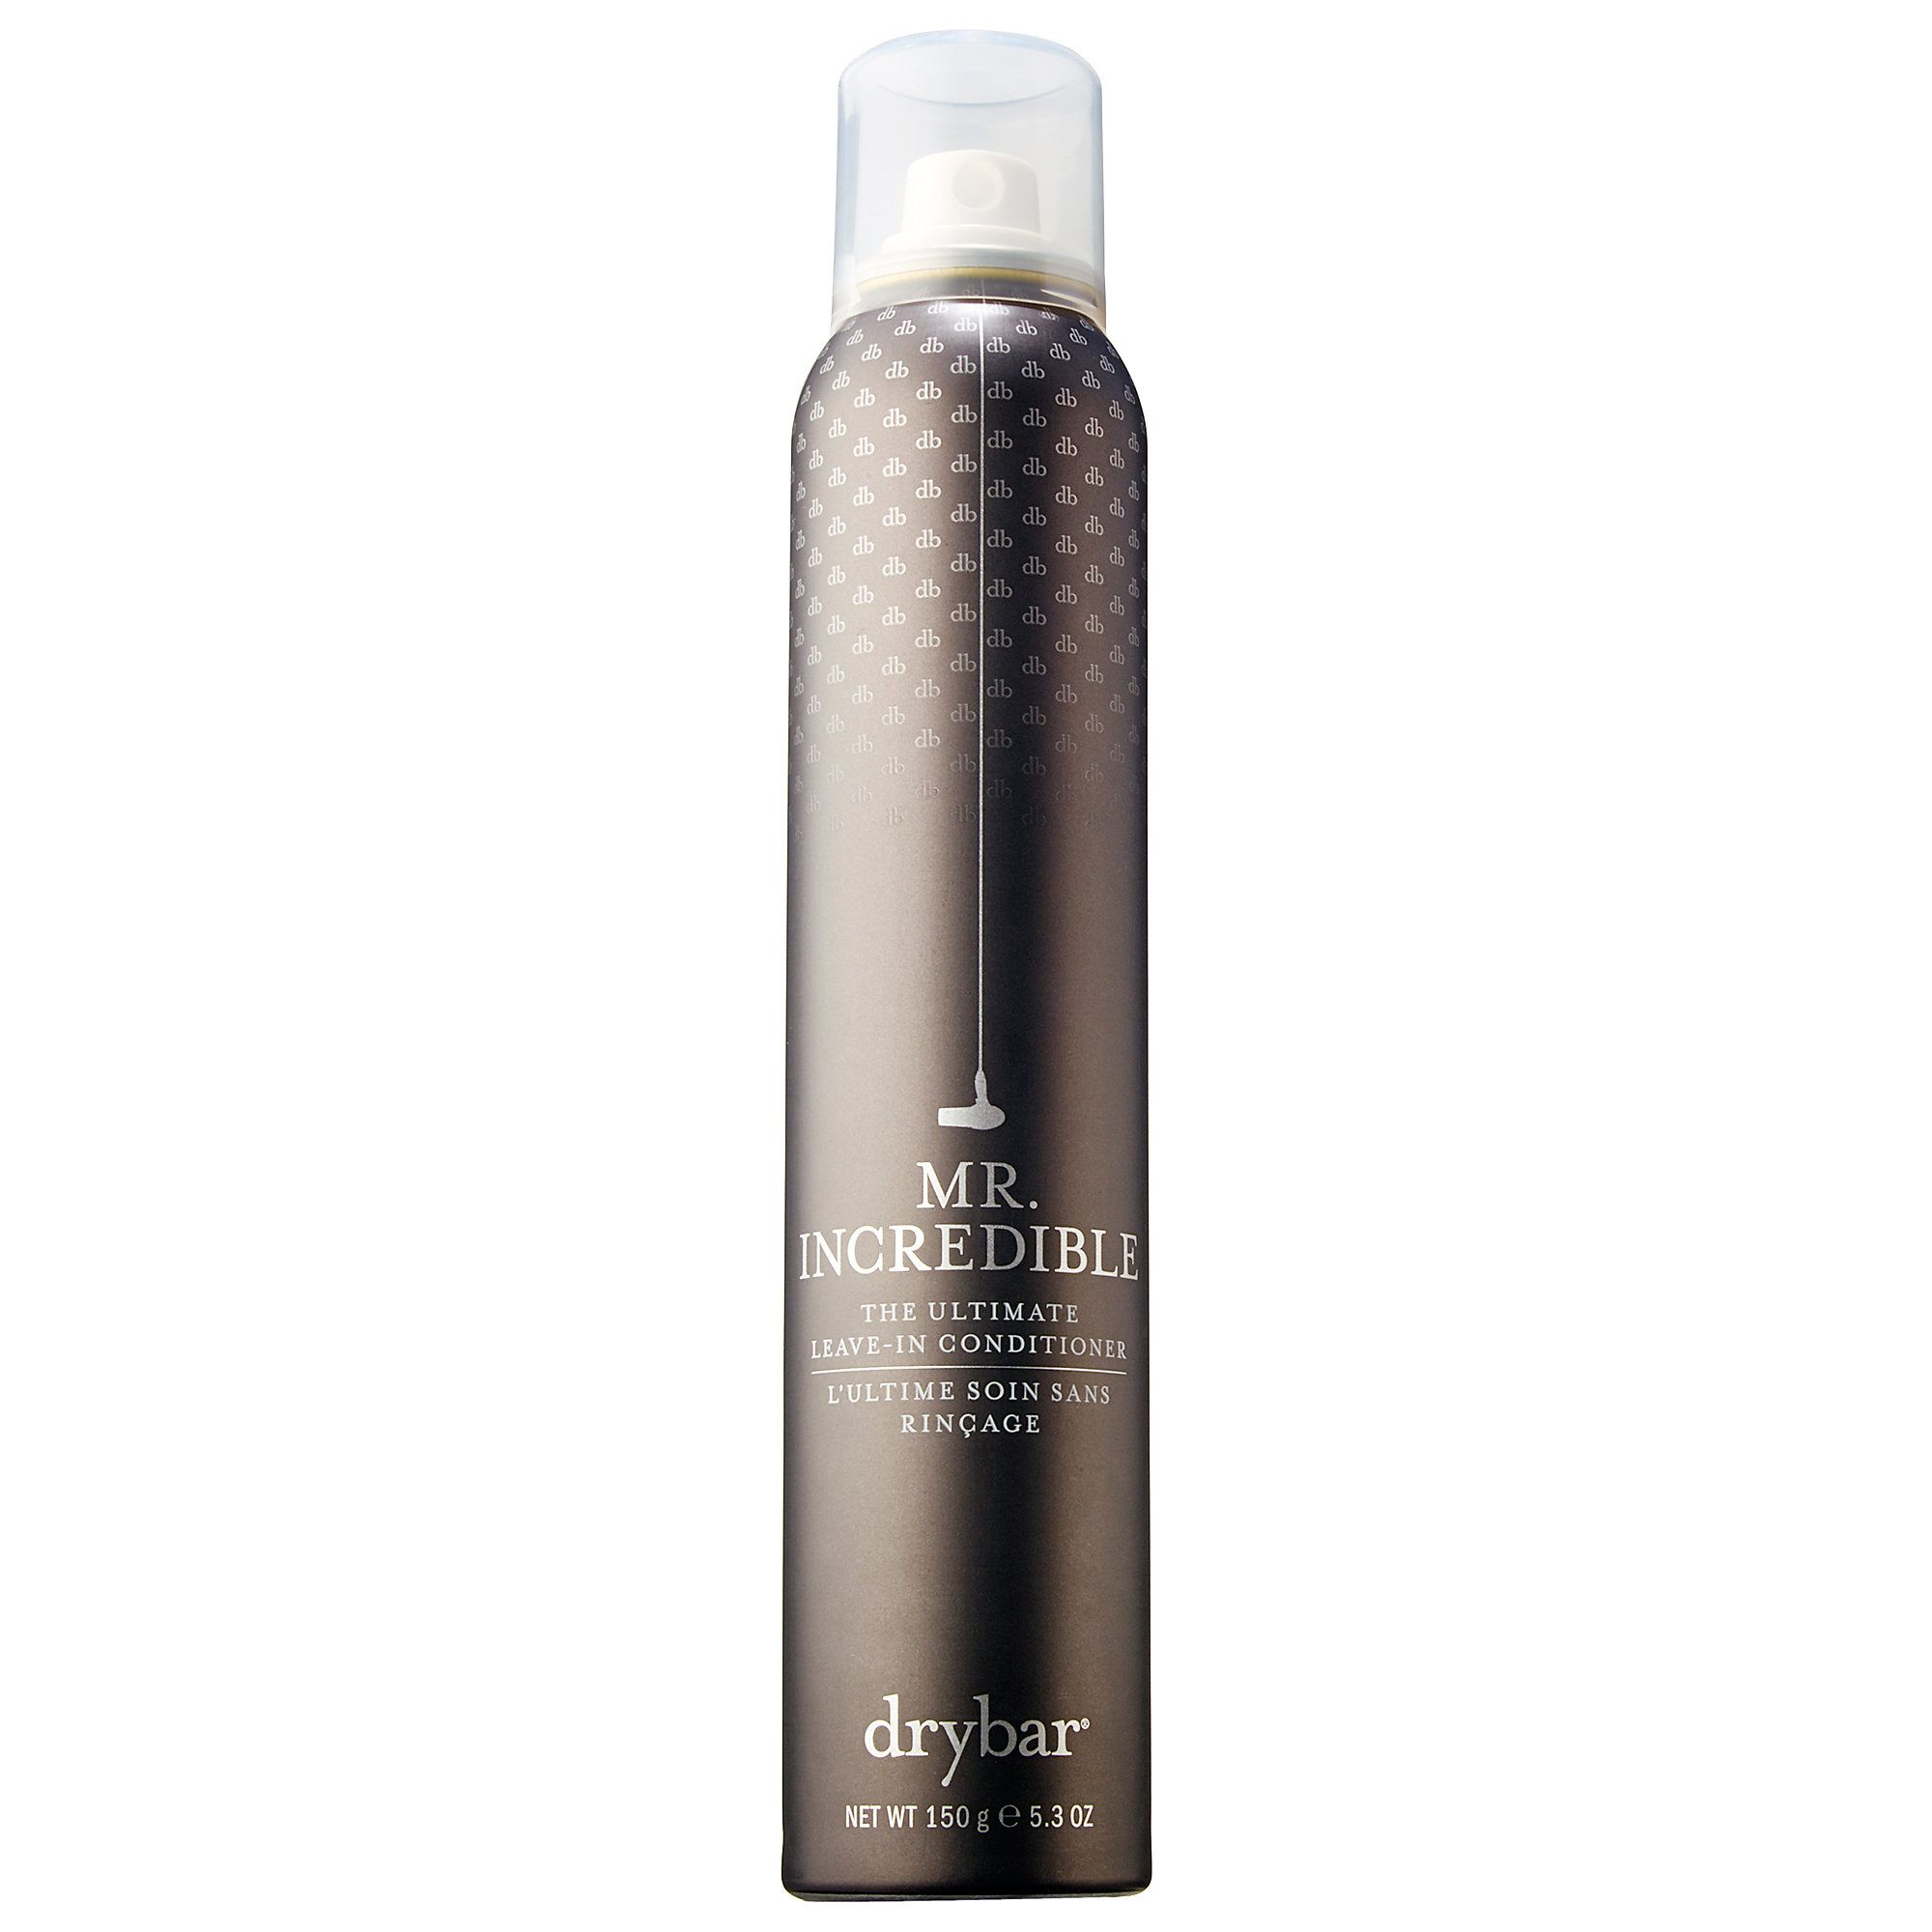 Shop Drybarus Mr Incredible The Ultimate LeaveIn Conditioner at